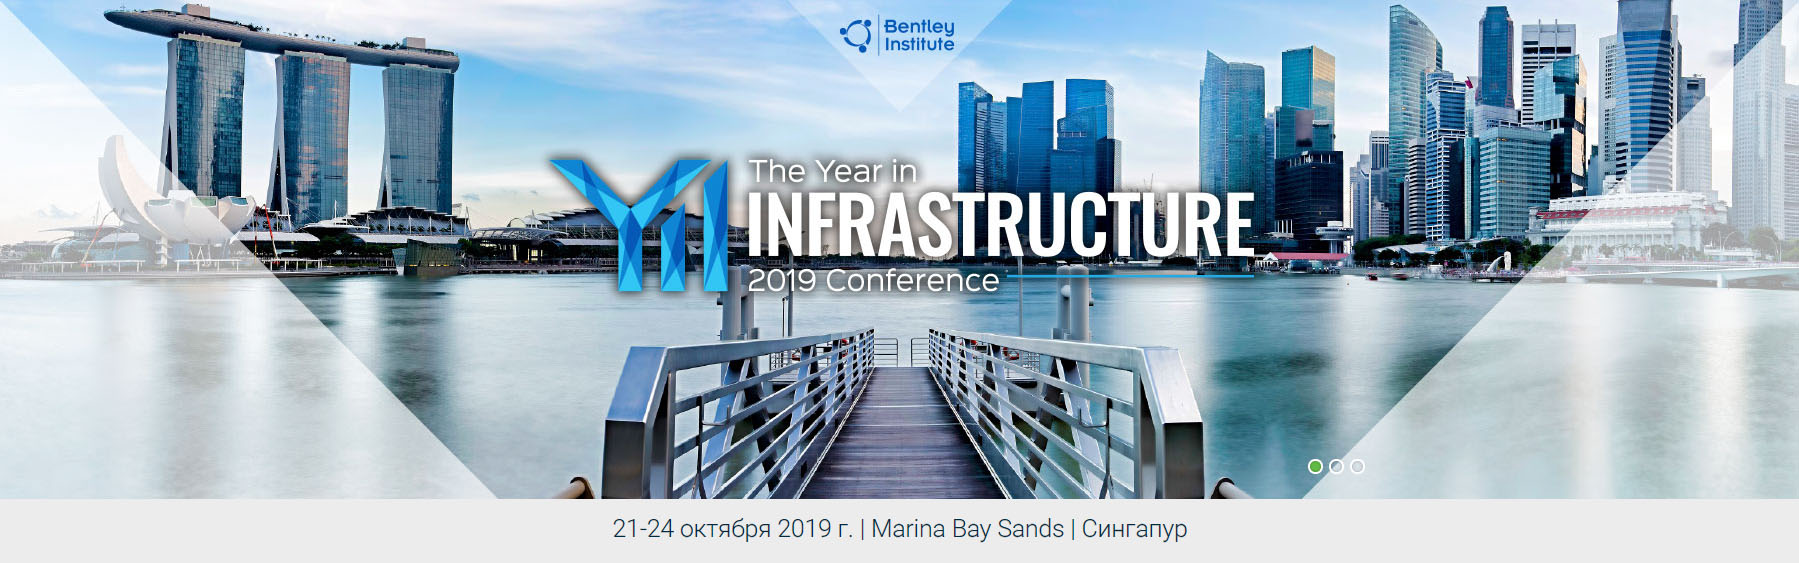 Year In Infrastructure 2019